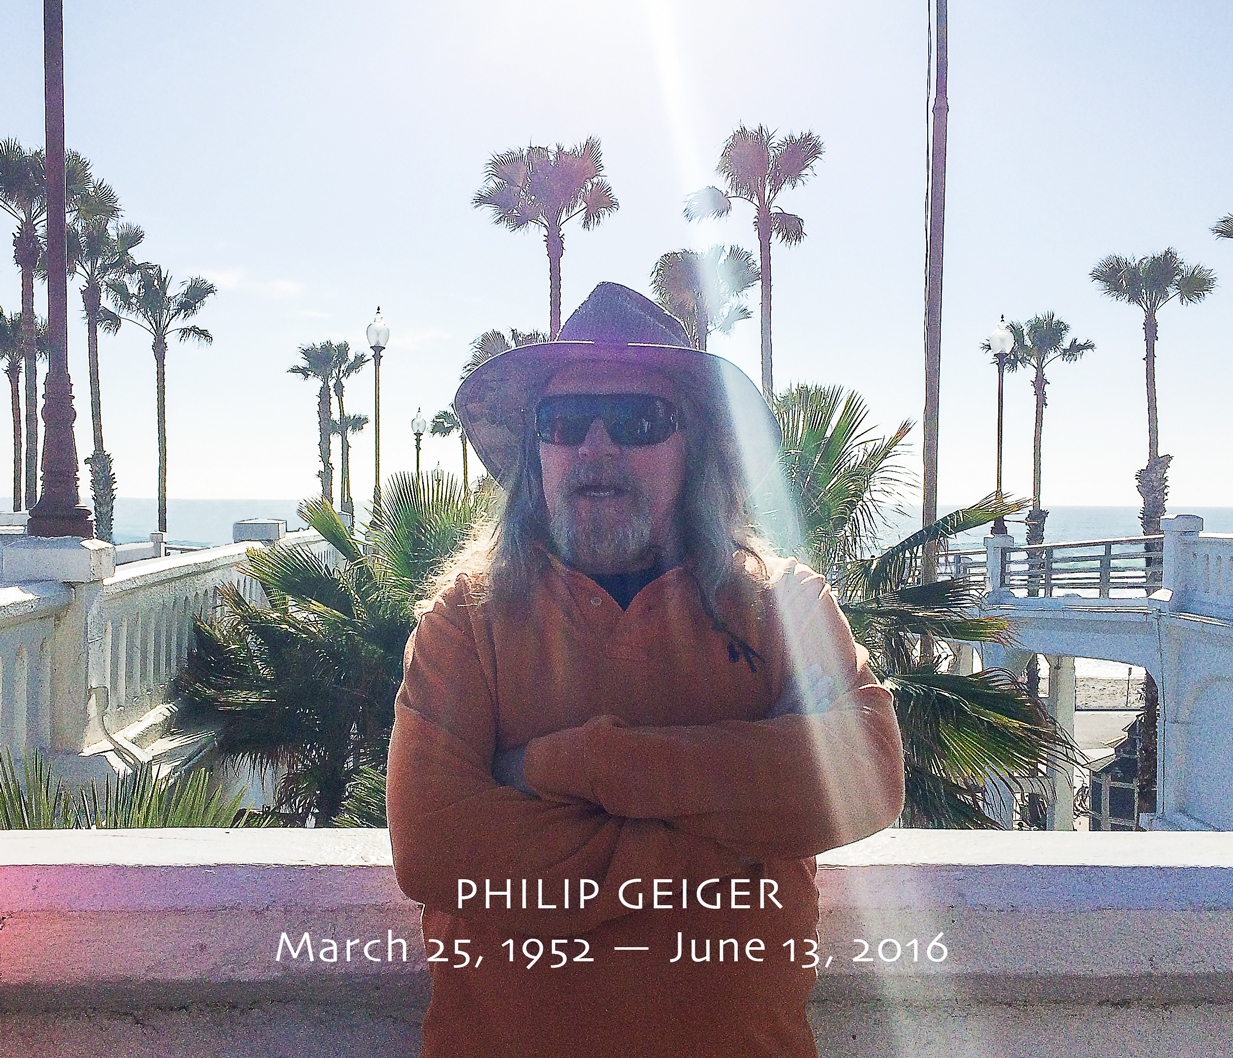 Philip Geiger Has A Date With Destiny